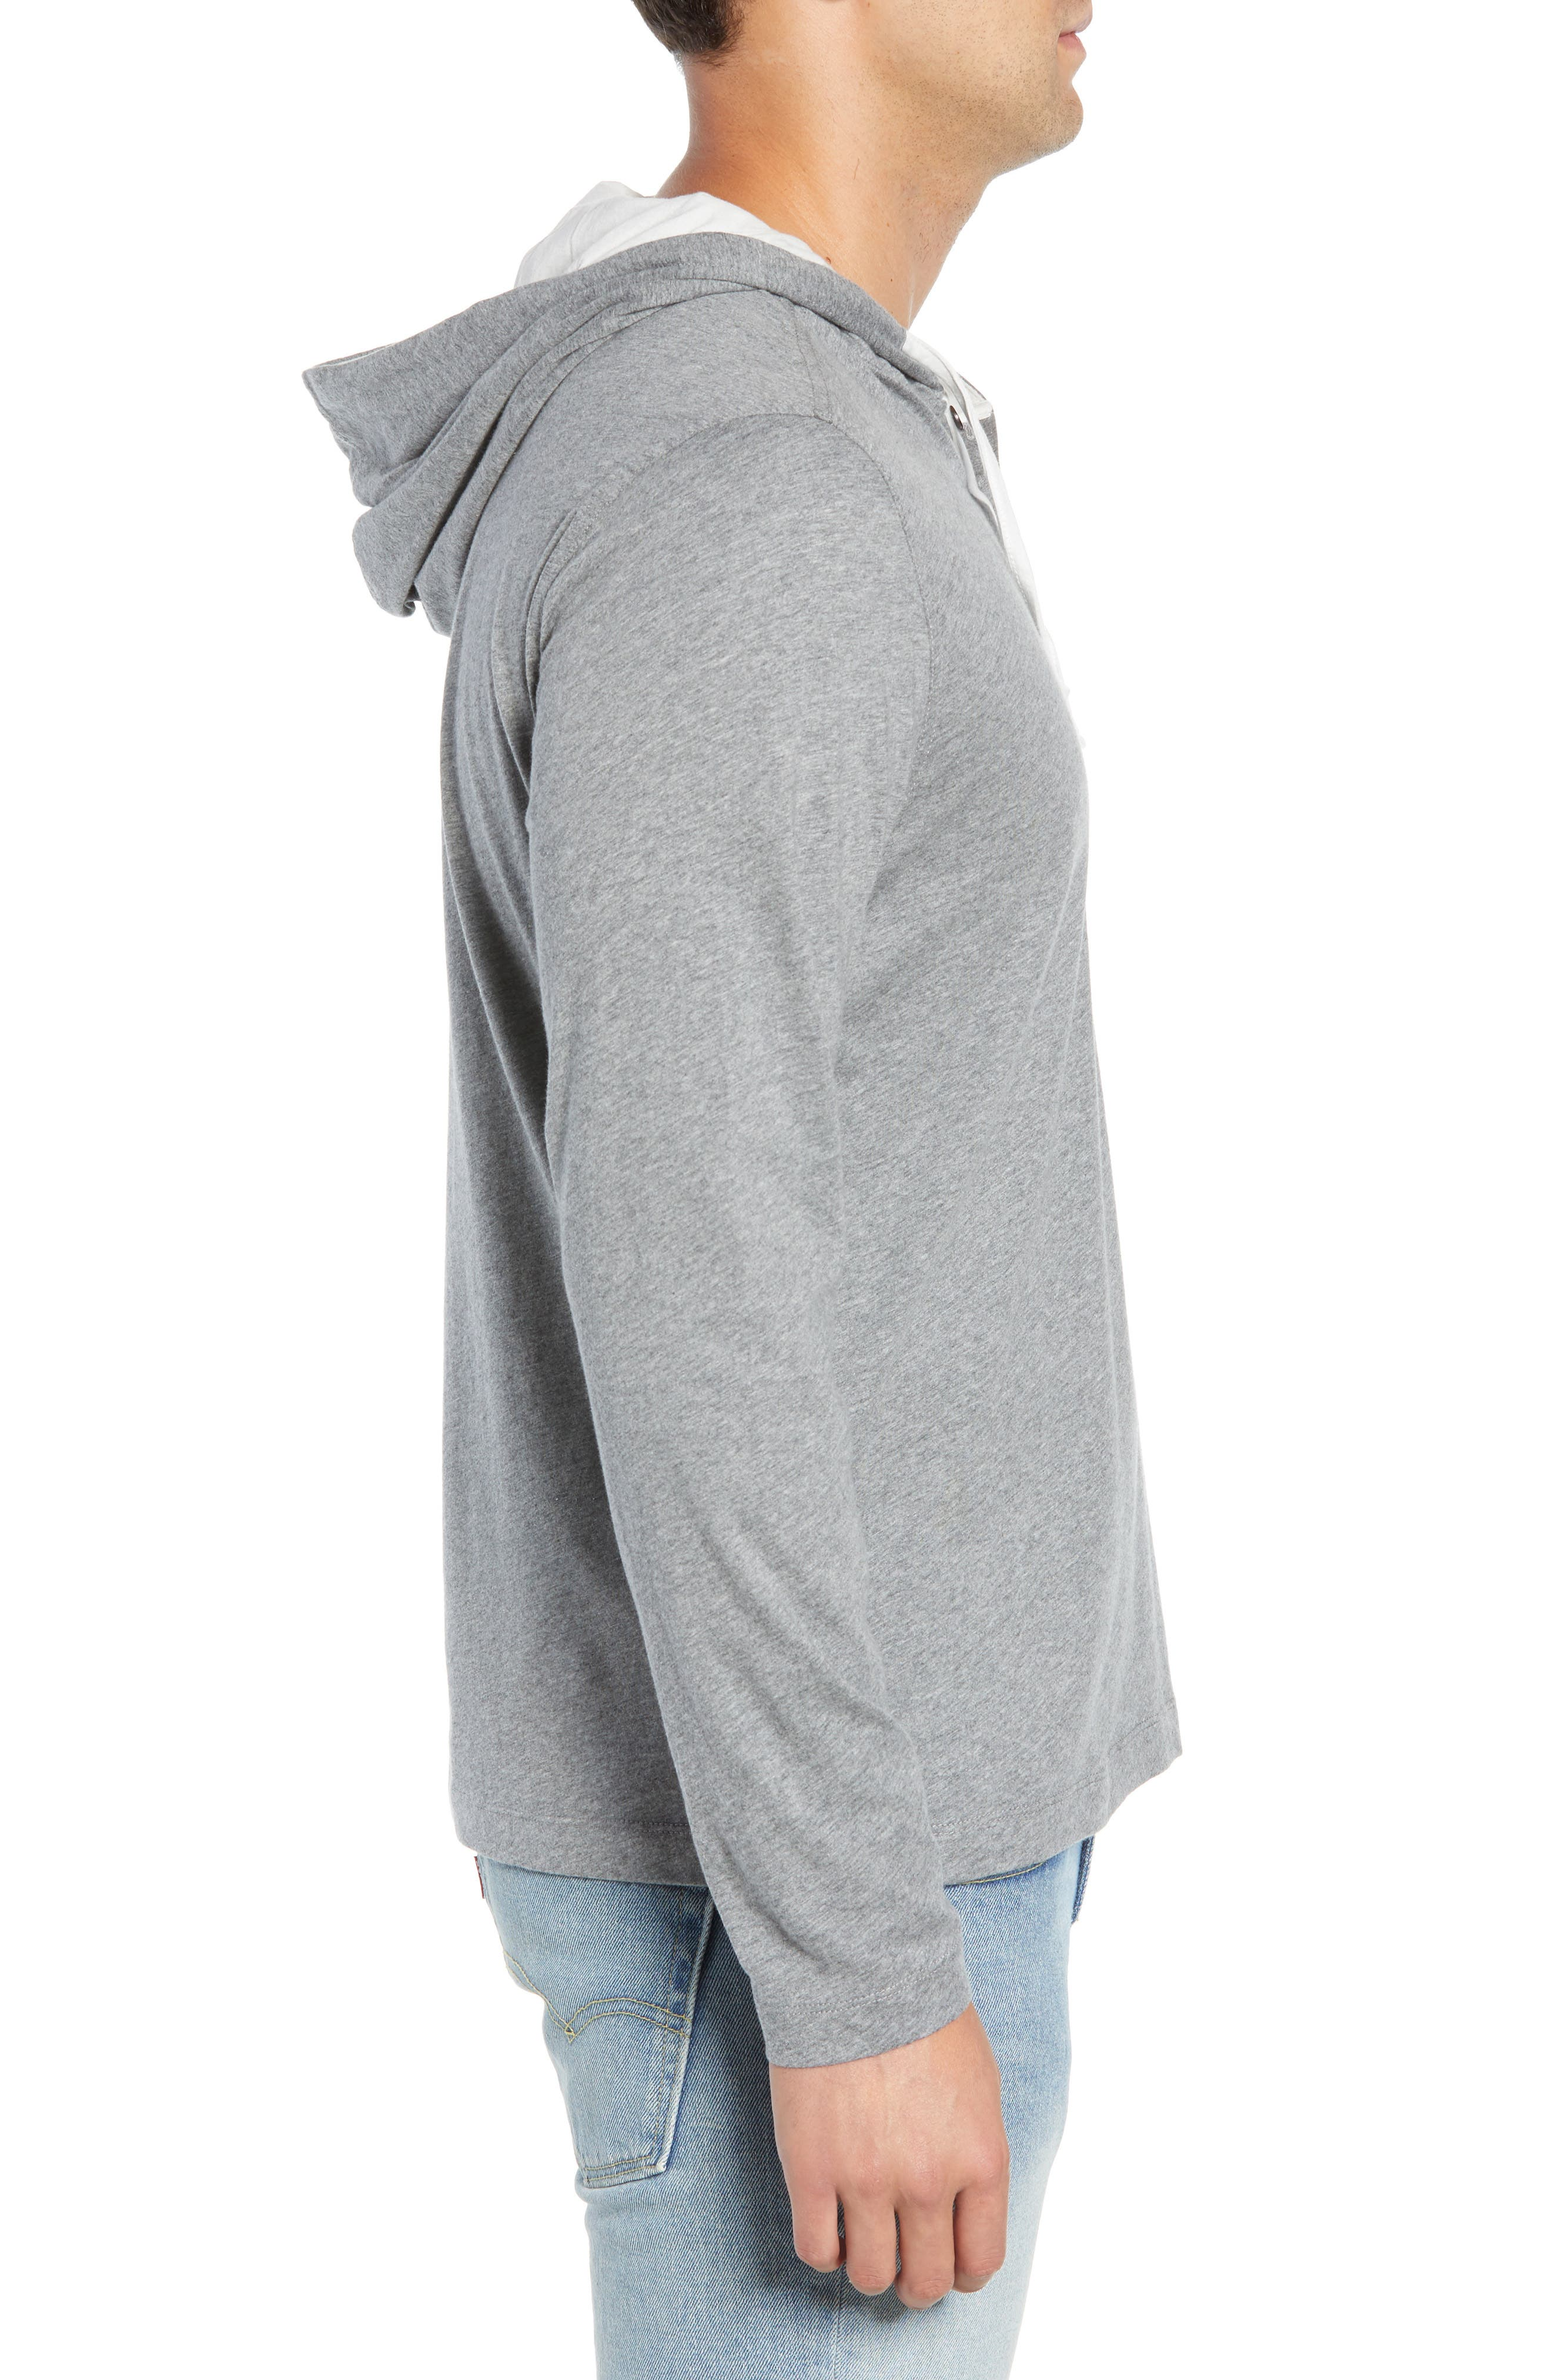 Carl Pullover Hoodie,                             Alternate thumbnail 3, color,                             MID GREY